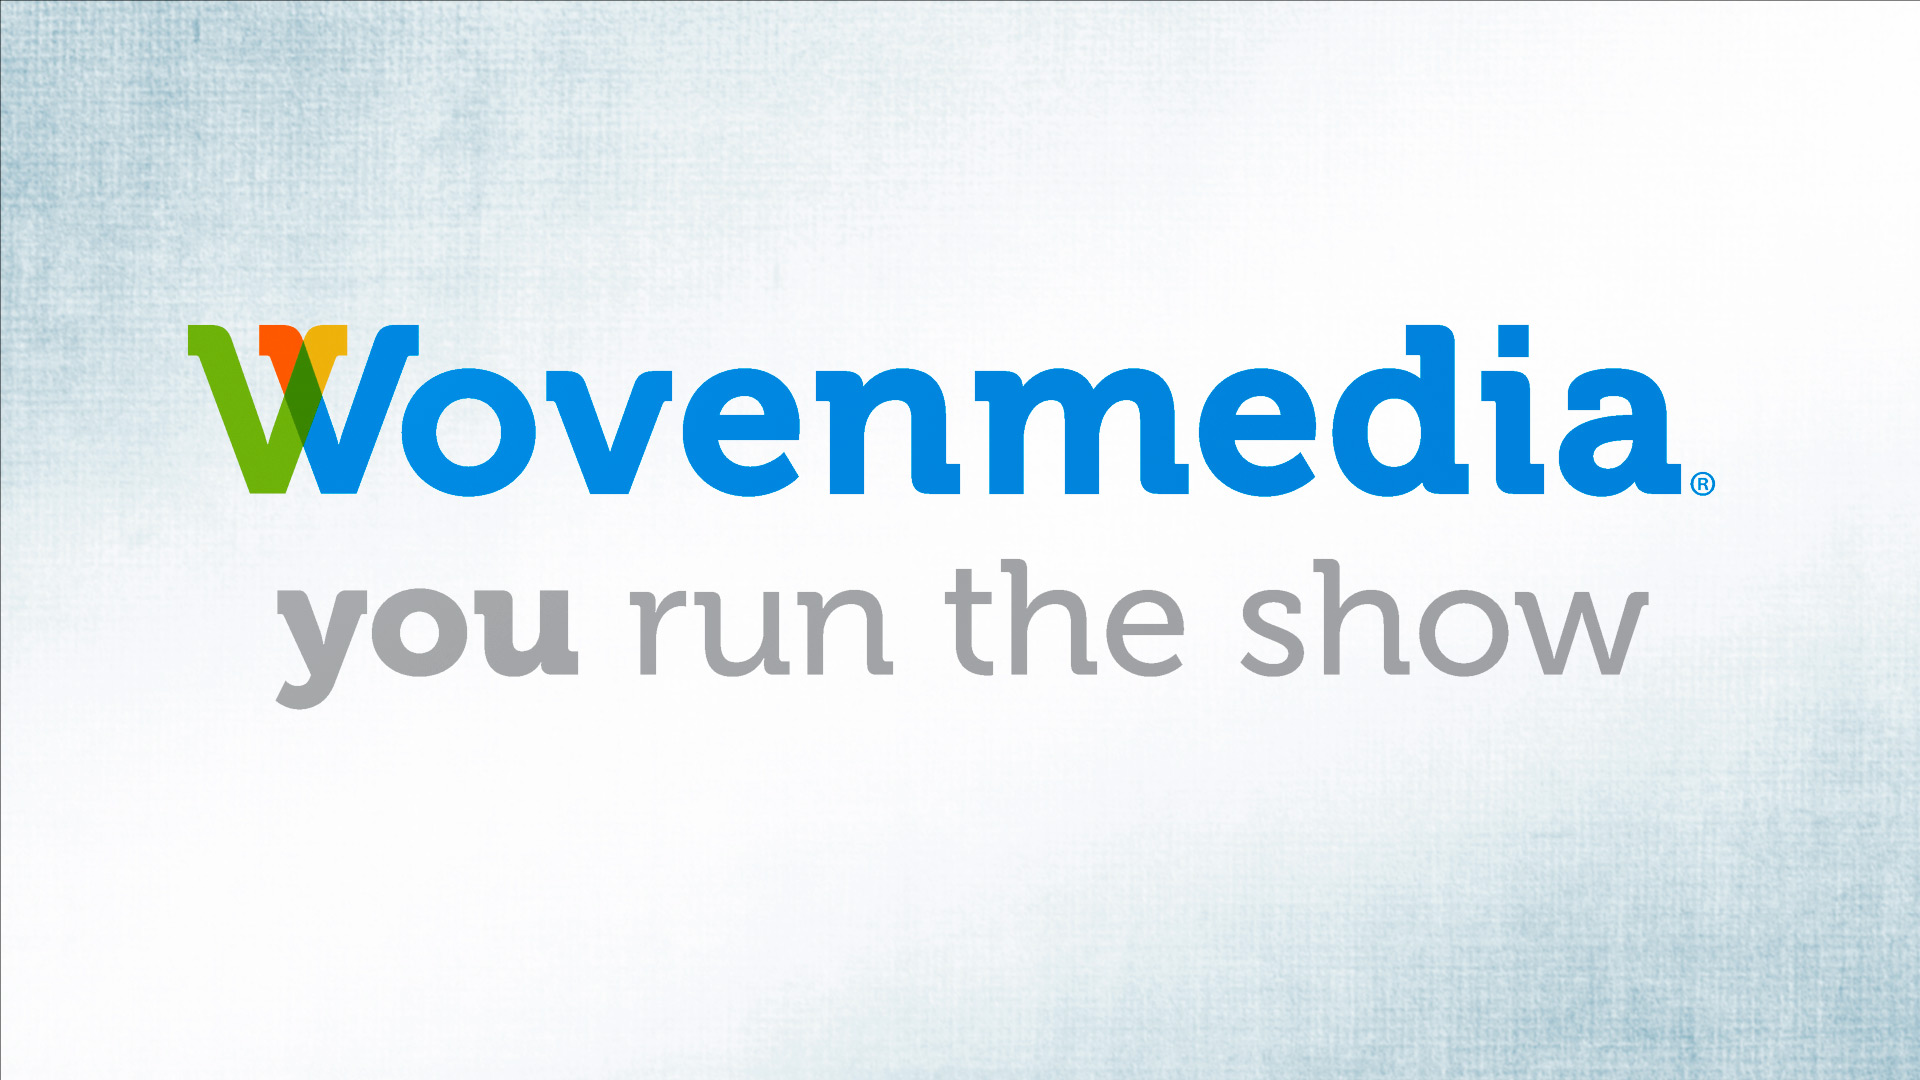 Wovenmedia Product Demo Video